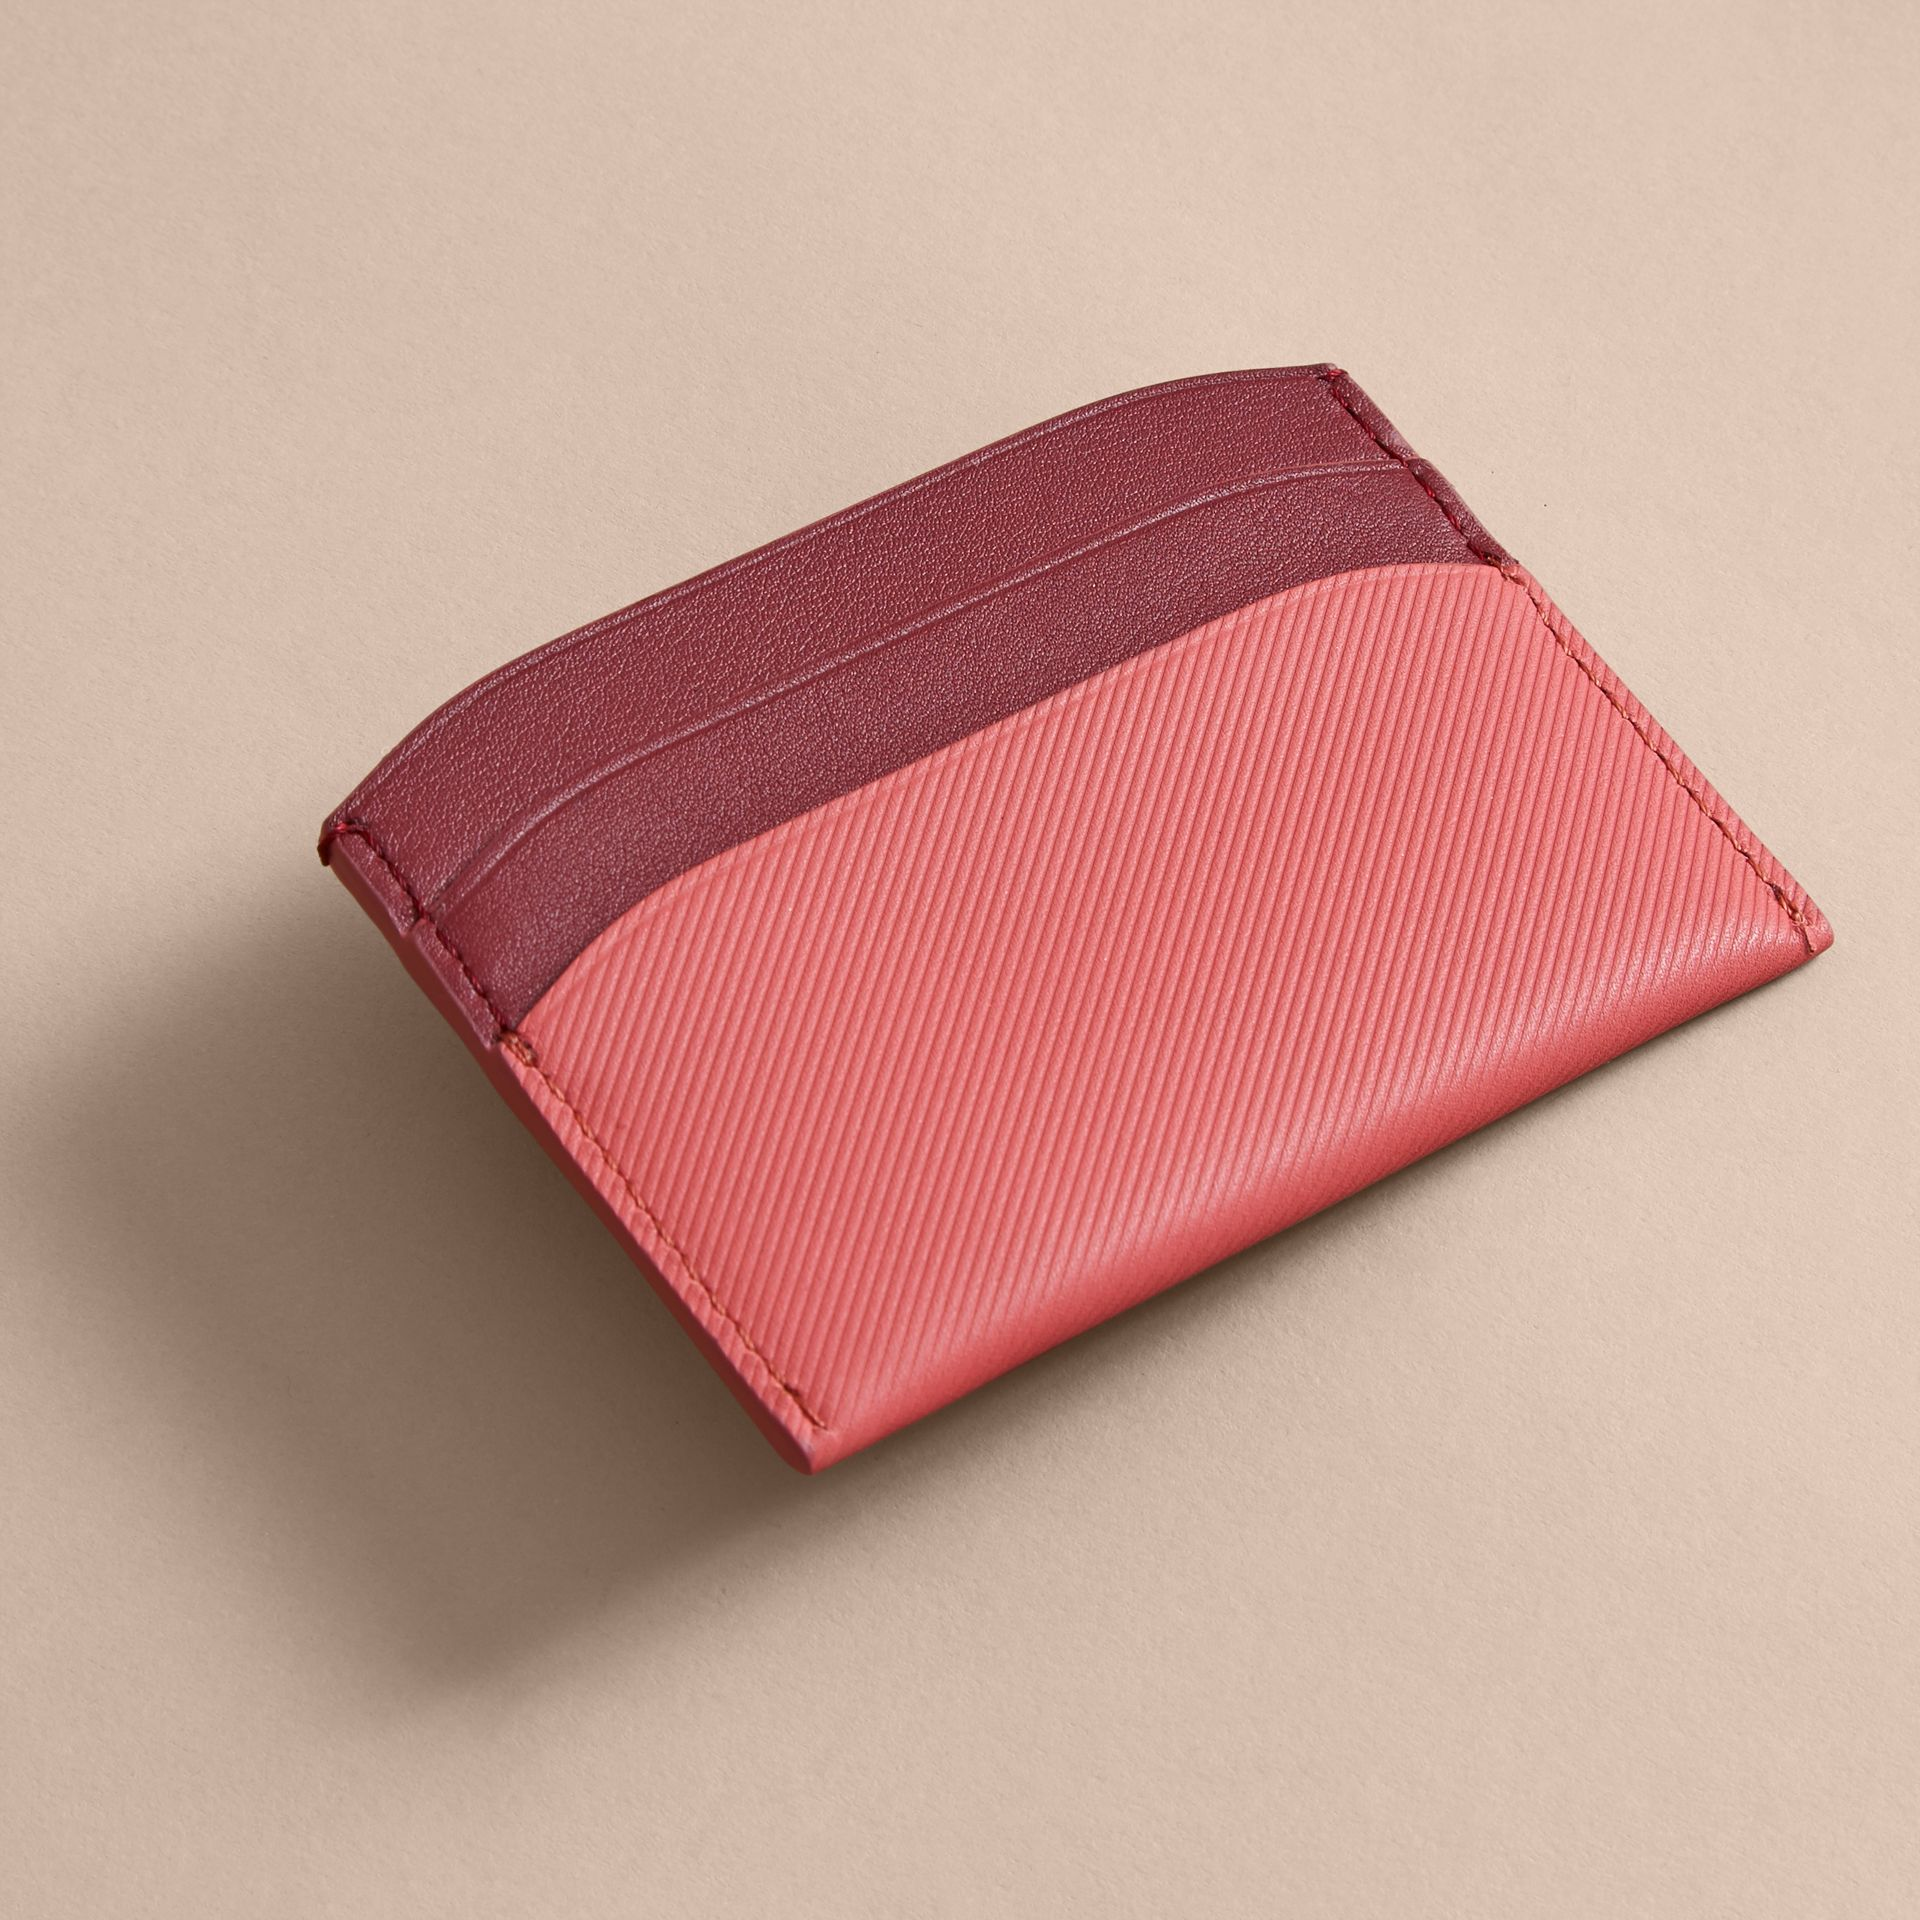 Porte-cartes en cuir trench bicolore (Rose Blossom/rouge Antique) - Femme | Burberry - photo de la galerie 2